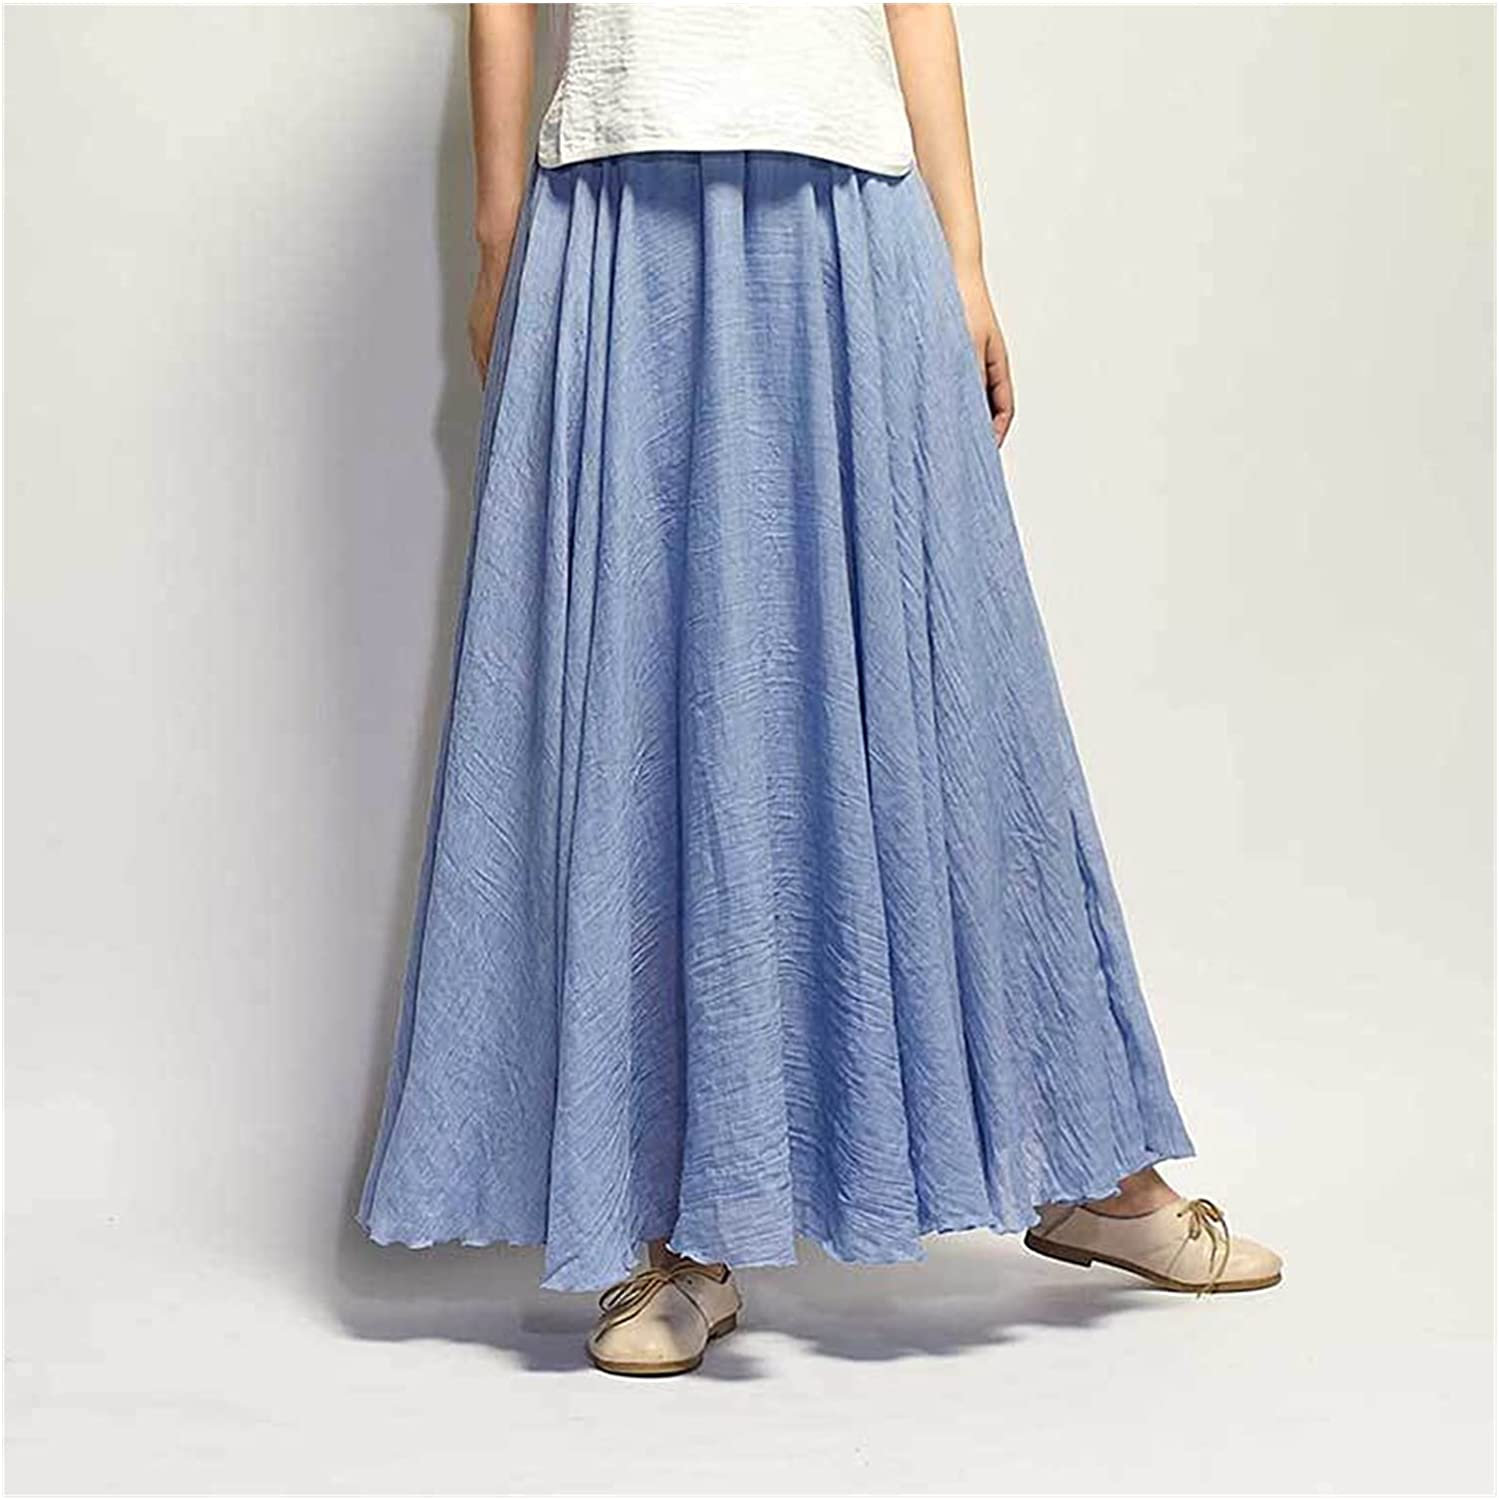 Uongfi Wedding Online limited product Dresses for Bride Courier shipping free shipping Linen Skirts Cotton Women Long